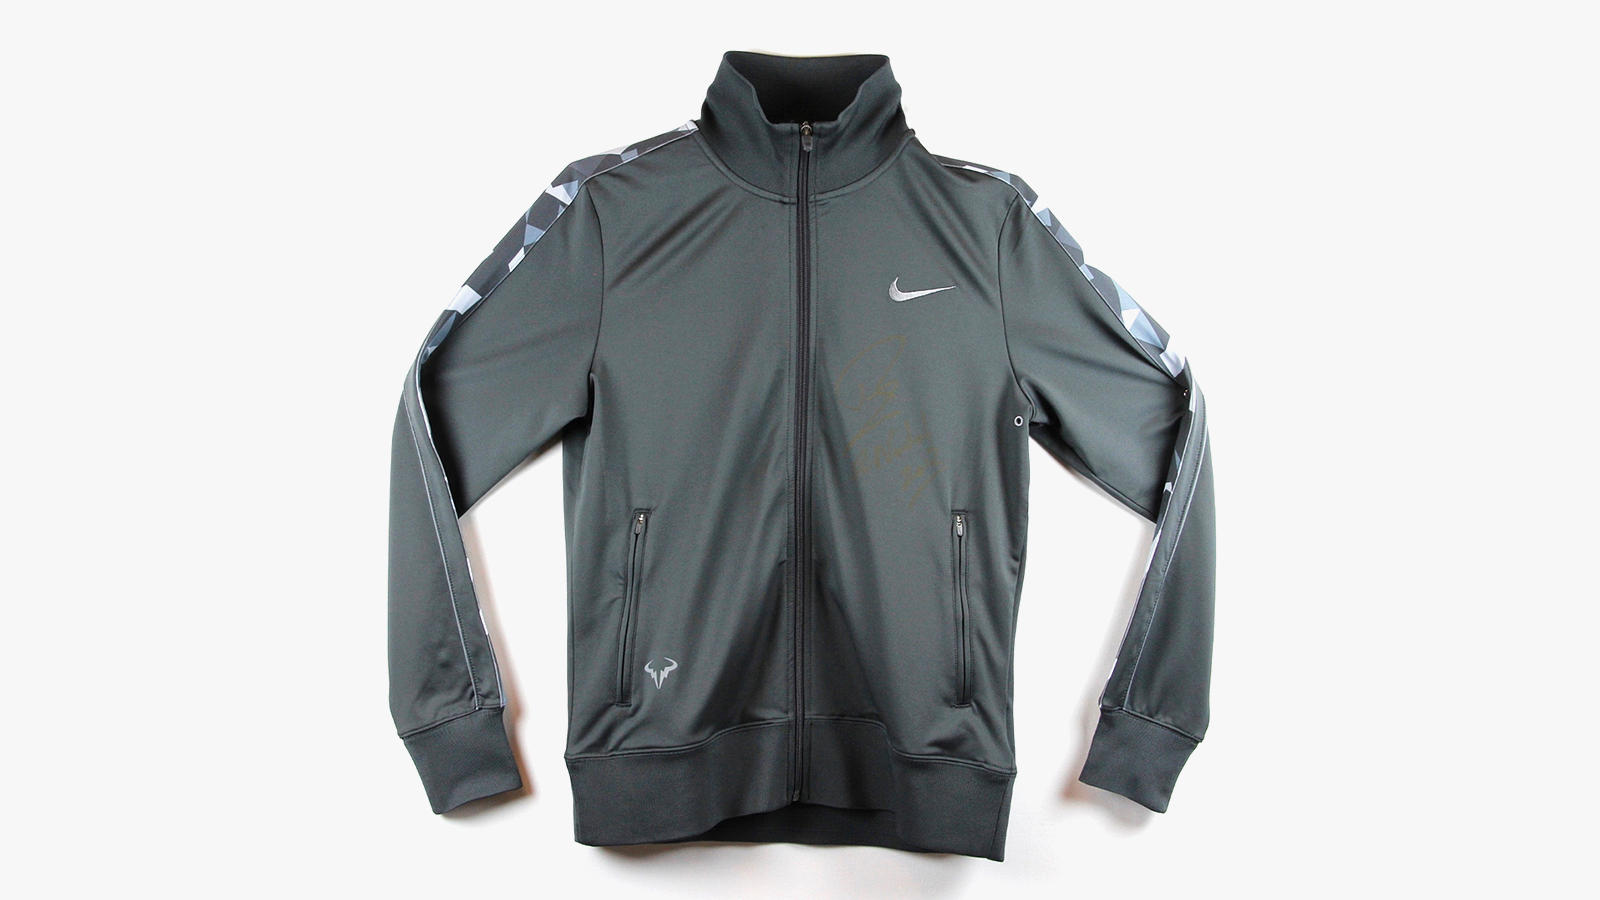 2012-Nike-Rafa-Final-Dri-Fit-N98-Prink-Jacket-Autographed-by-Rafael-Nadal